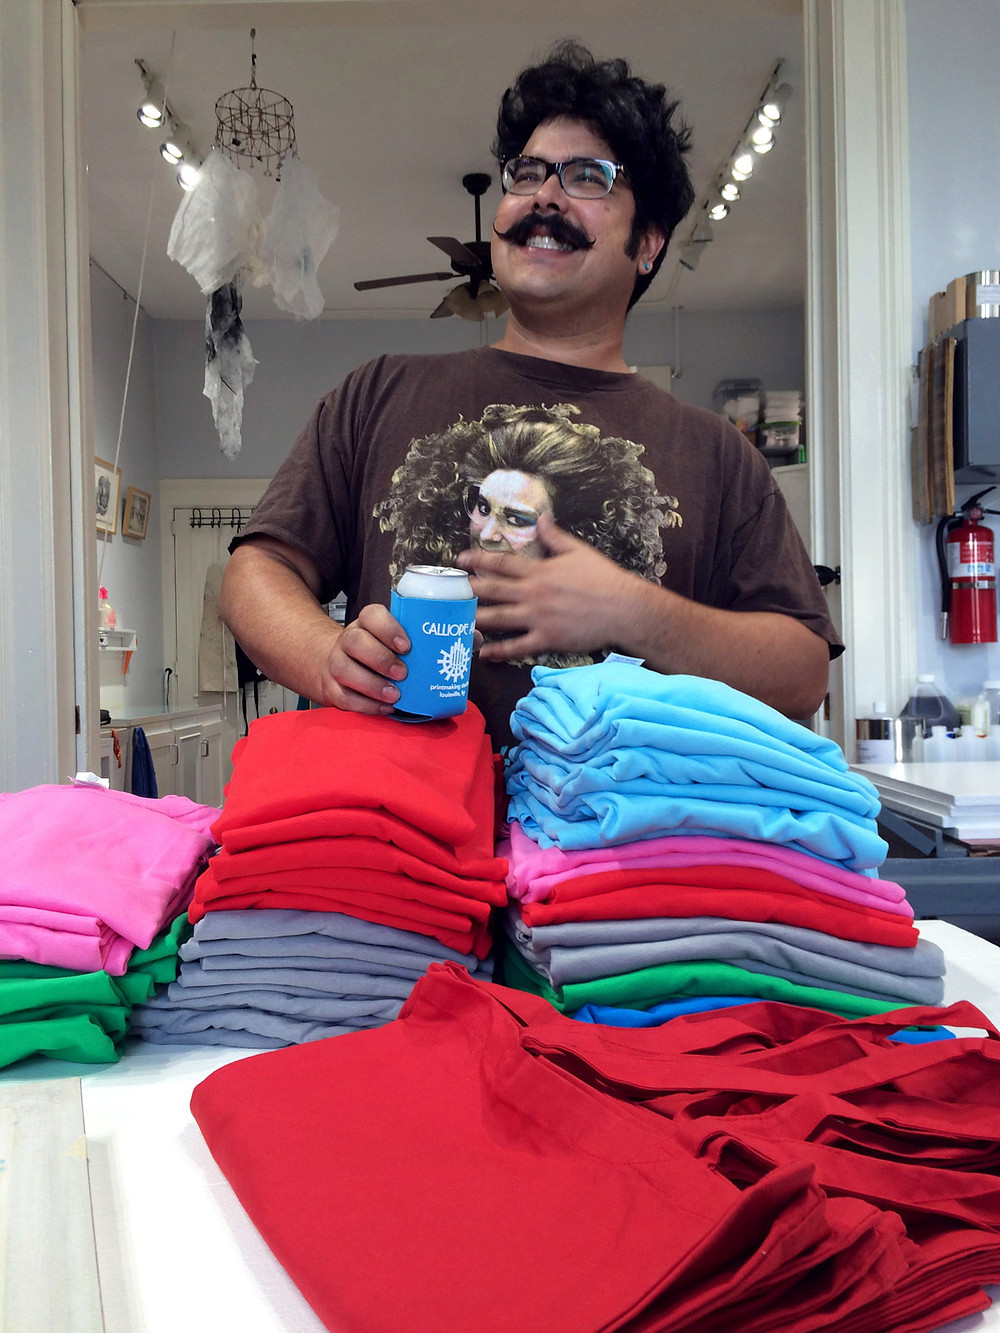 Rudy and T-shirts, in preparation for our Grand Opening